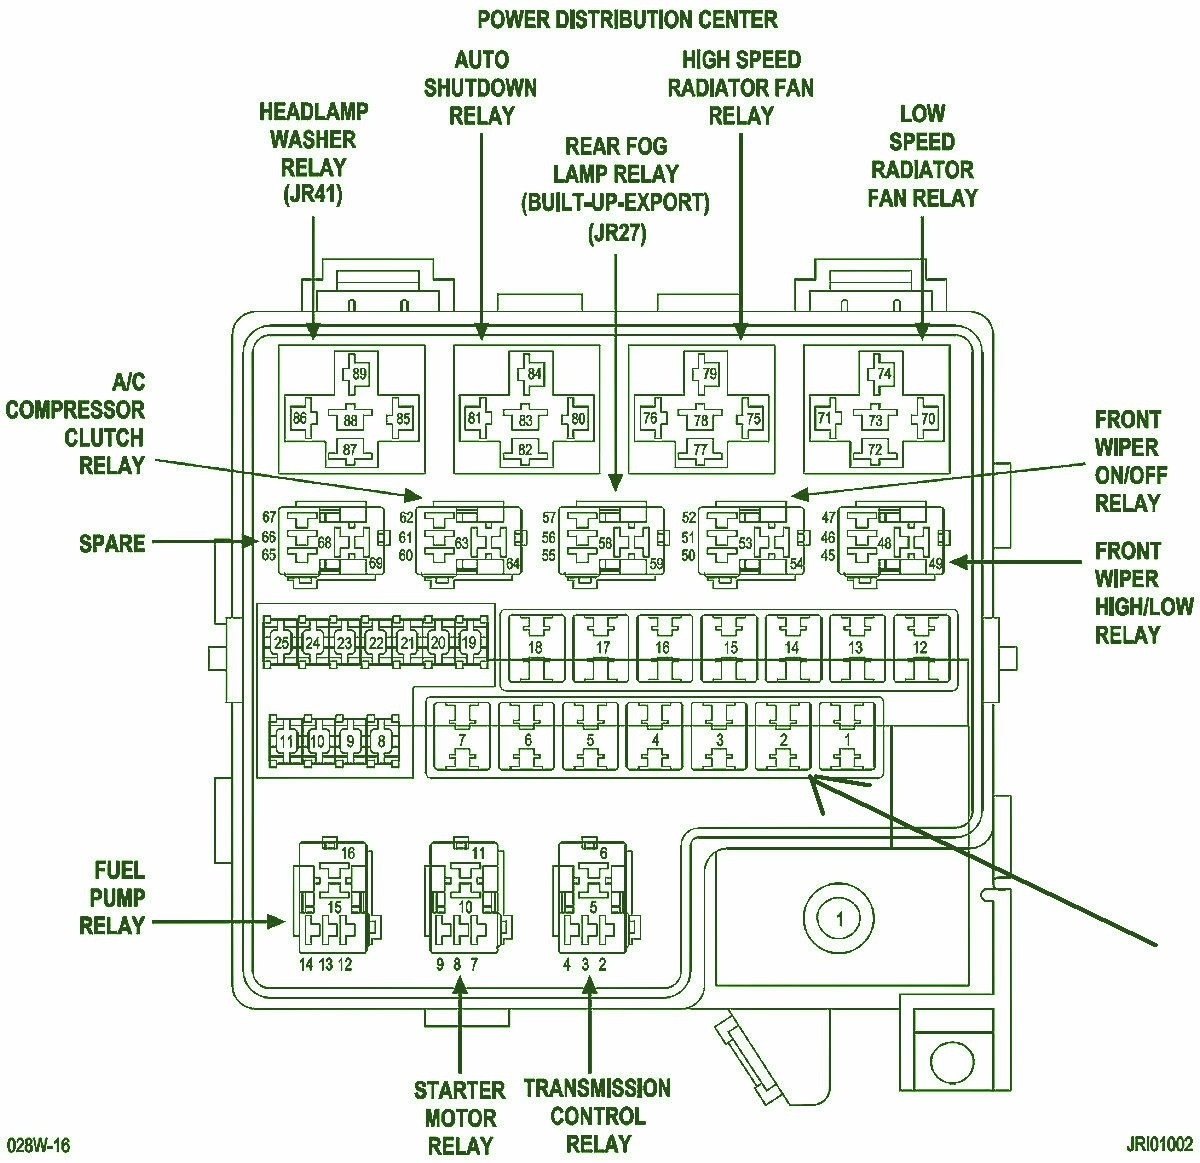 pic 7639269864944911098 1600x1200 fuse box horn green 2005 ford taurus horn relay location \u2022 wiring 2004 e250 fuse panel diagram at edmiracle.co